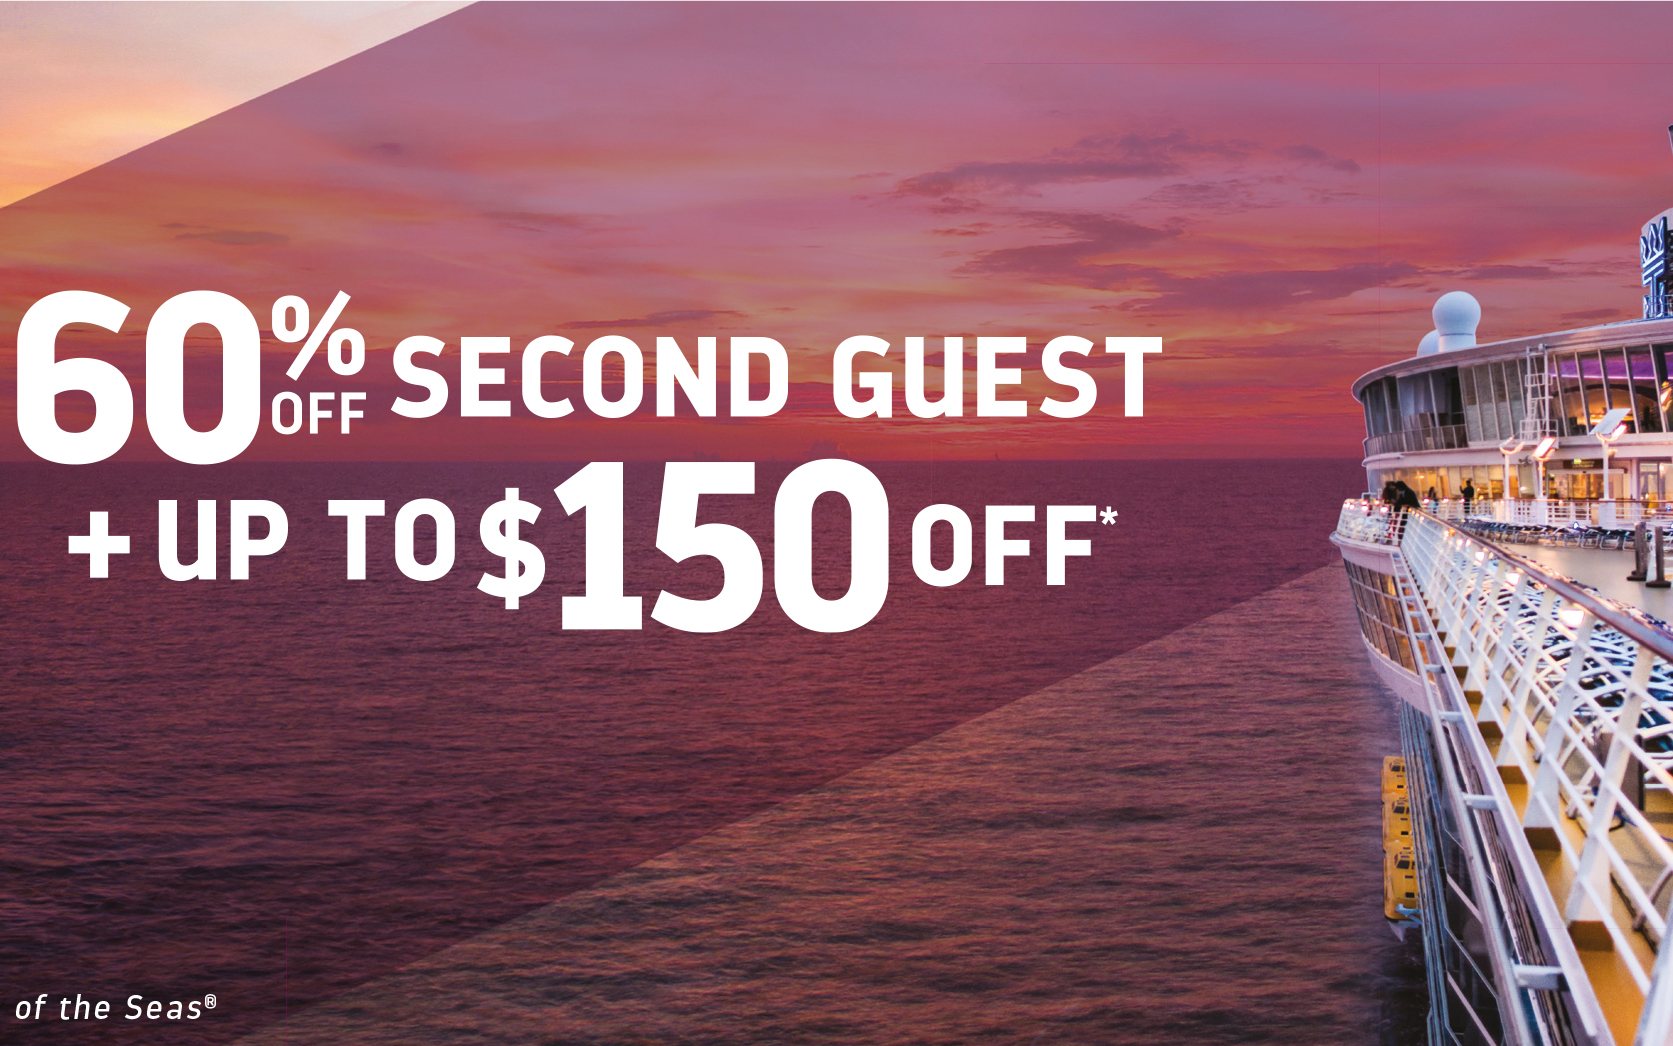 Get 60% Second Gest + up to $150 OFF